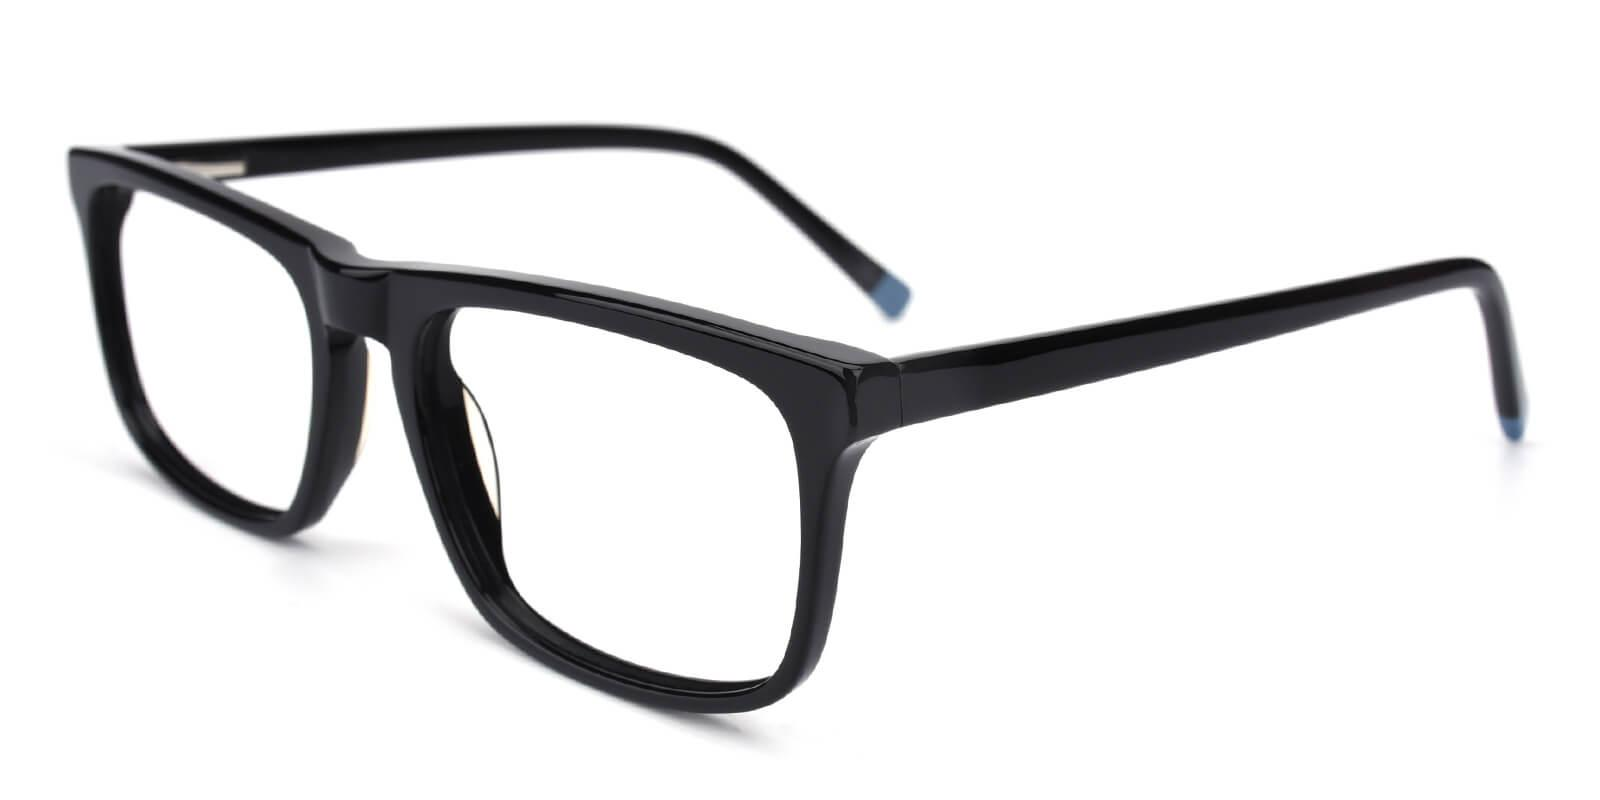 Etched-Black-Rectangle-Acetate-Eyeglasses-detail